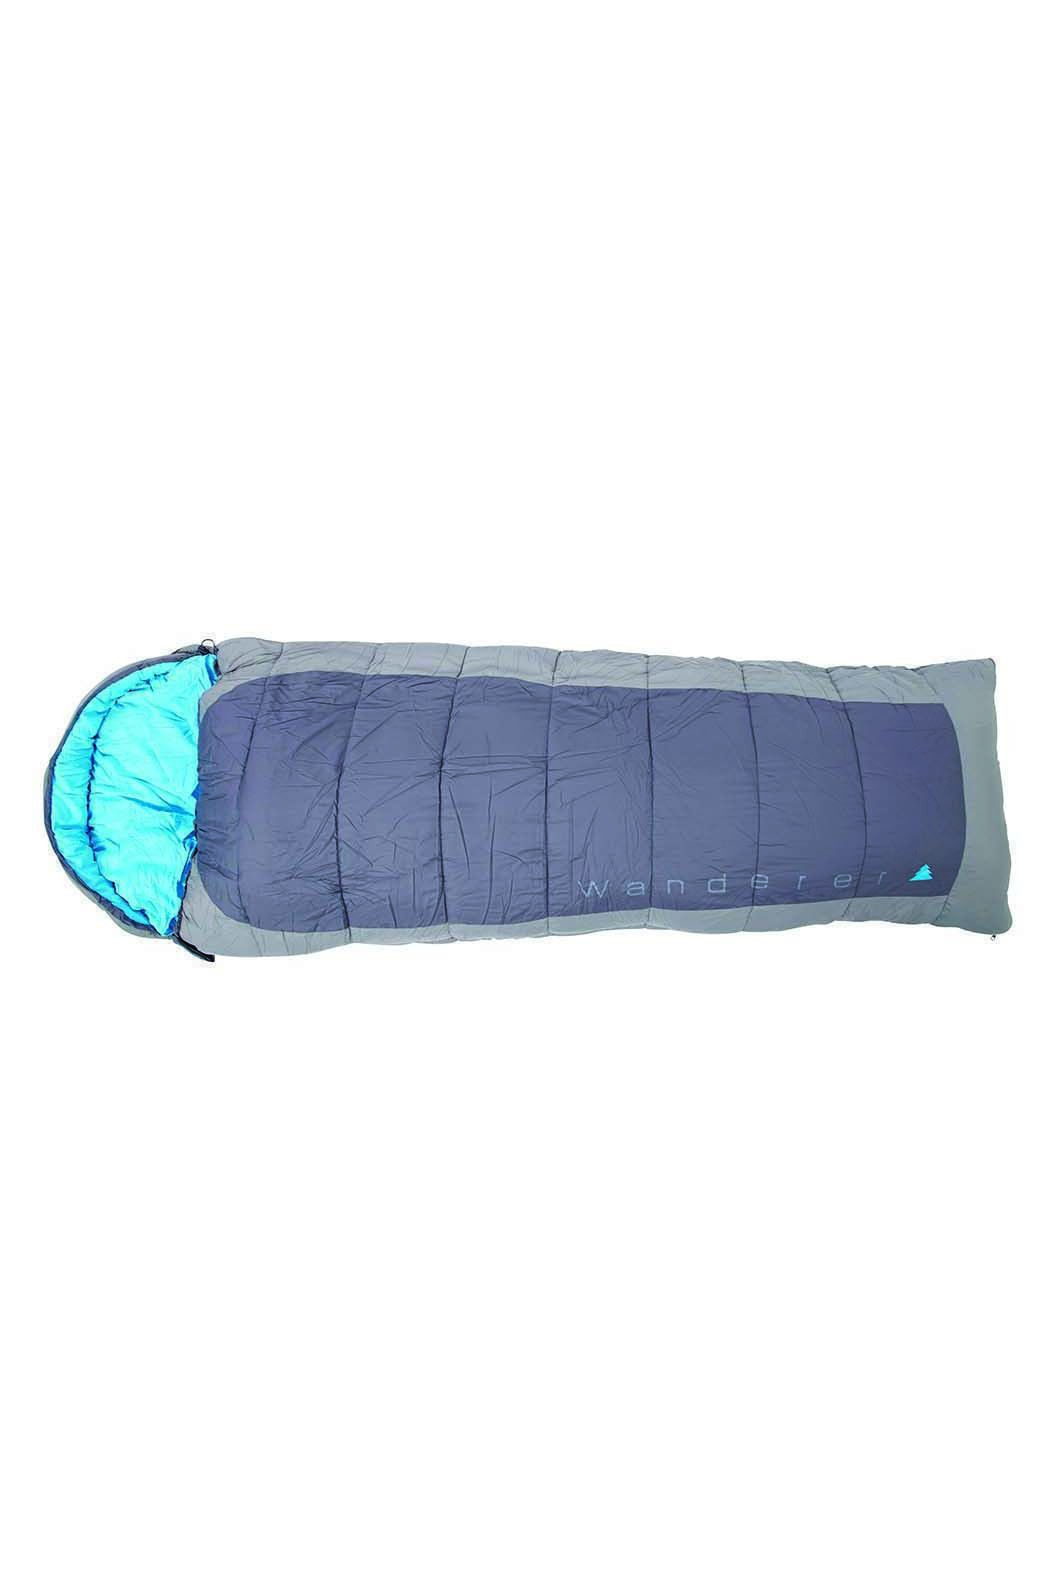 Wanderer SureFlame Hooded Sleeping Bag, None, hi-res